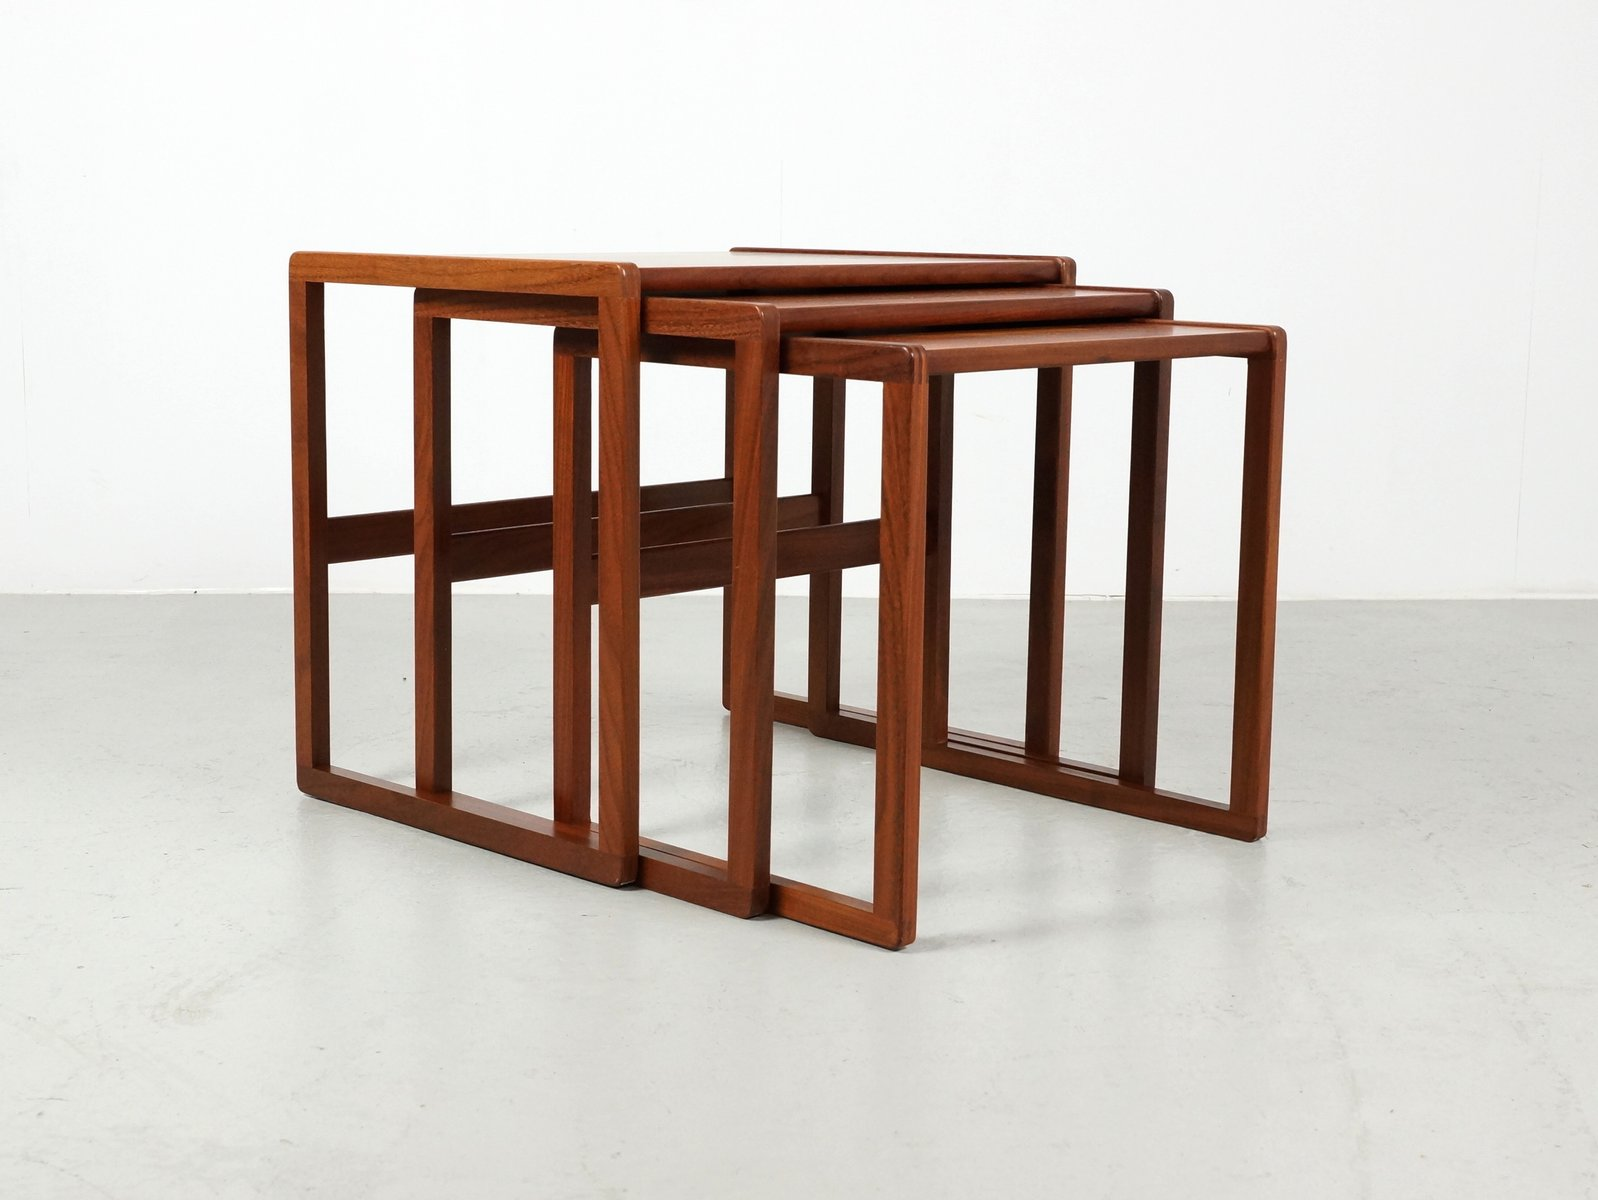 Mid Century Teak Nesting Tables From G Plan Set Of 3